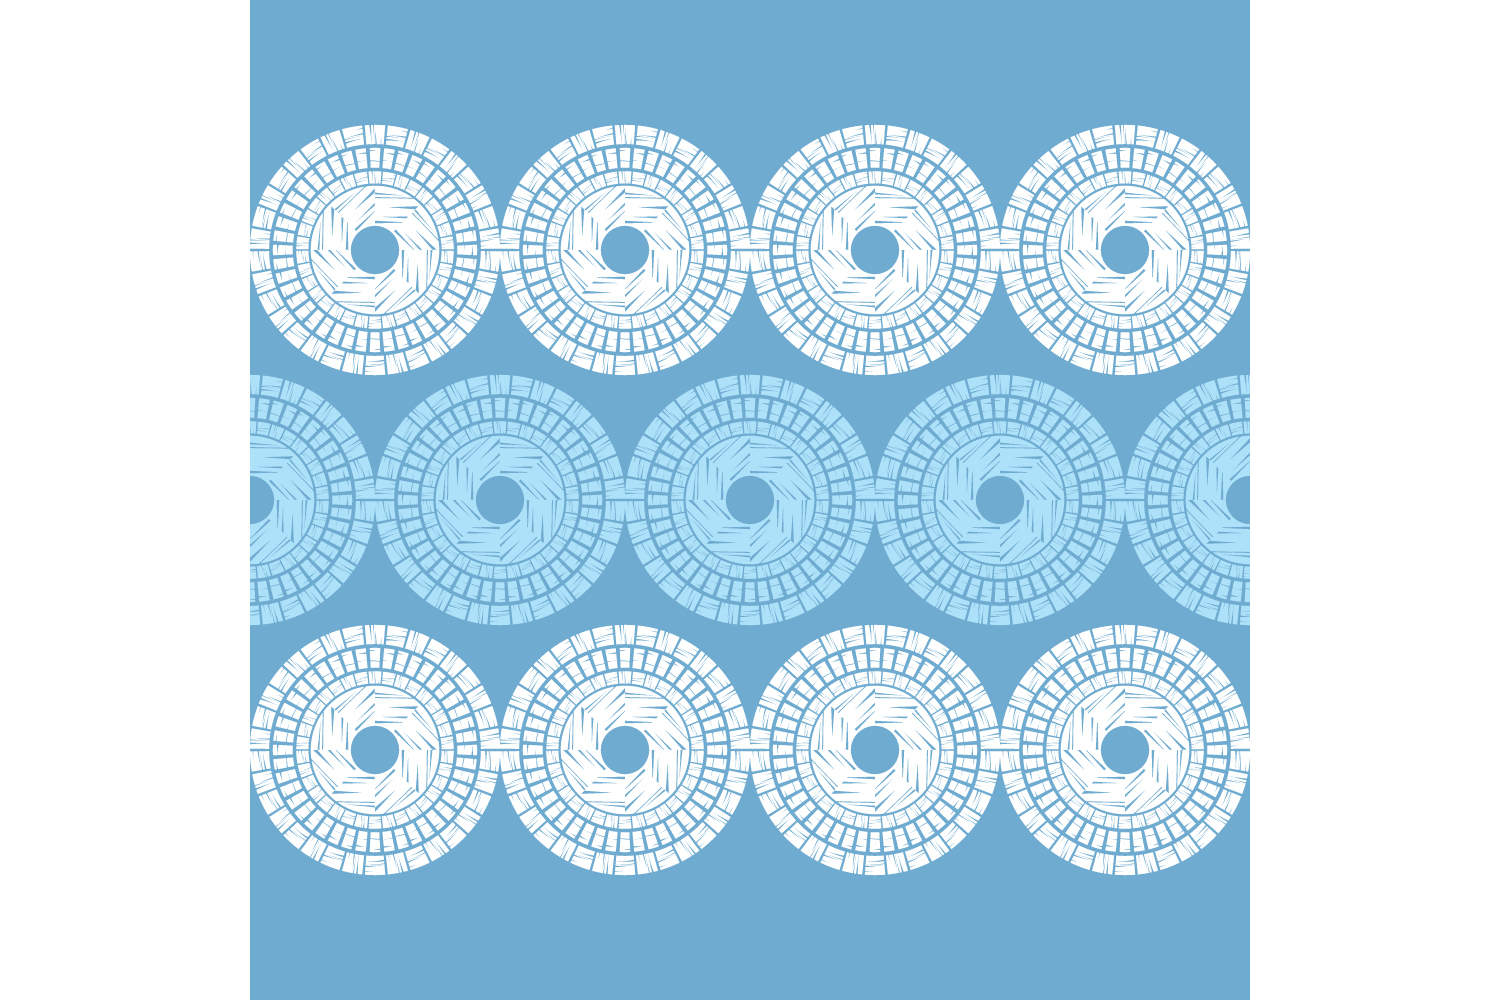 Polka dot ethnic ornament. Set of 10 seamless patterns. example image 7